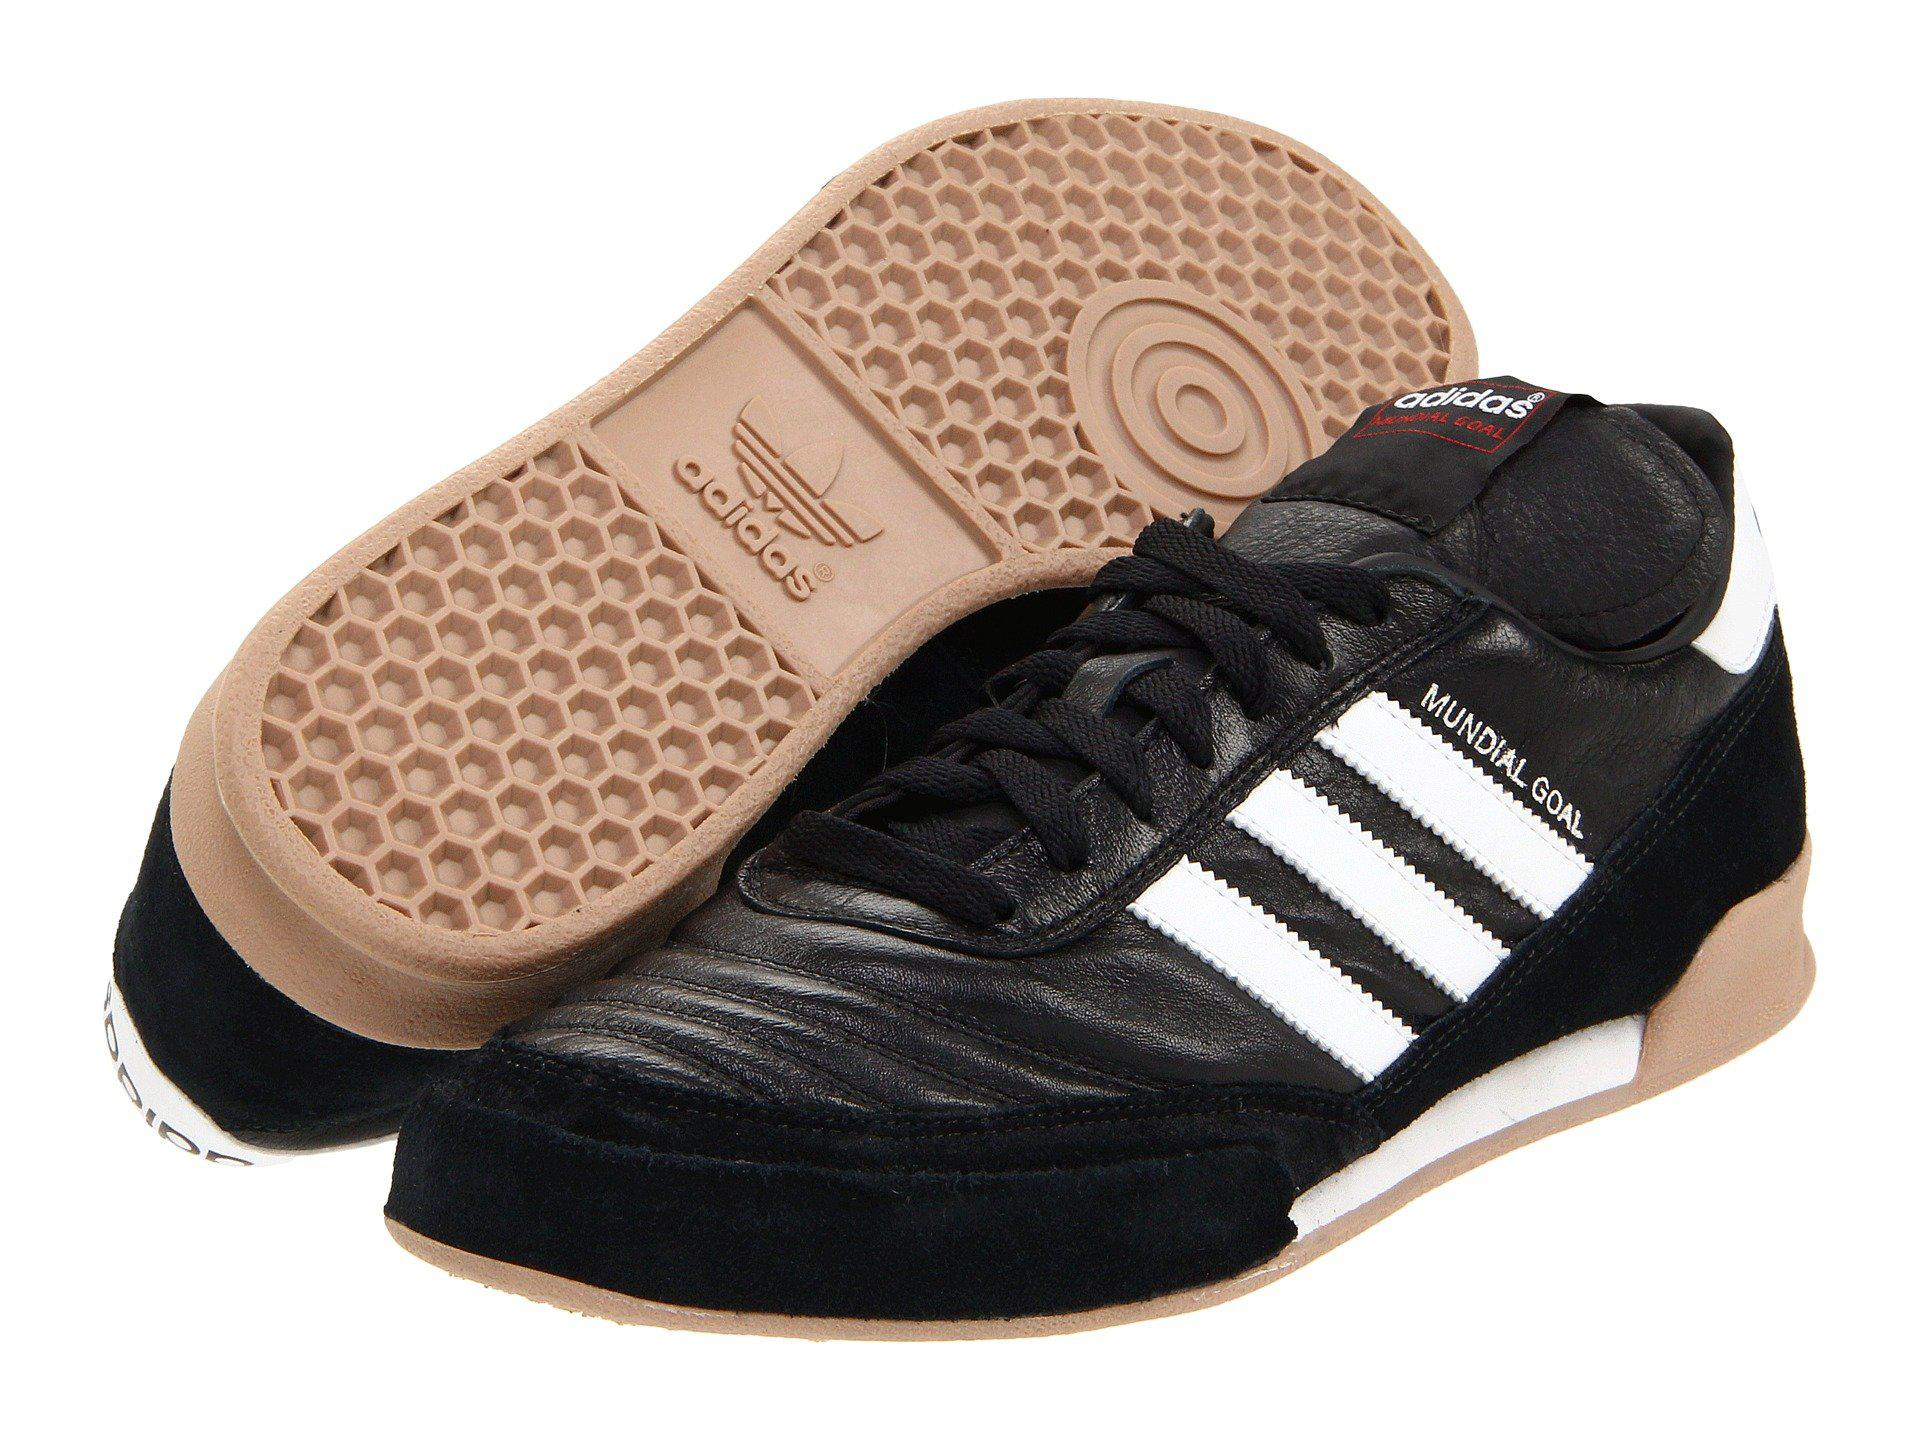 new arrival 7127c 97190 Adidas - Mundial Goal (black running White) Men s Soccer Shoes for Men -.  View fullscreen